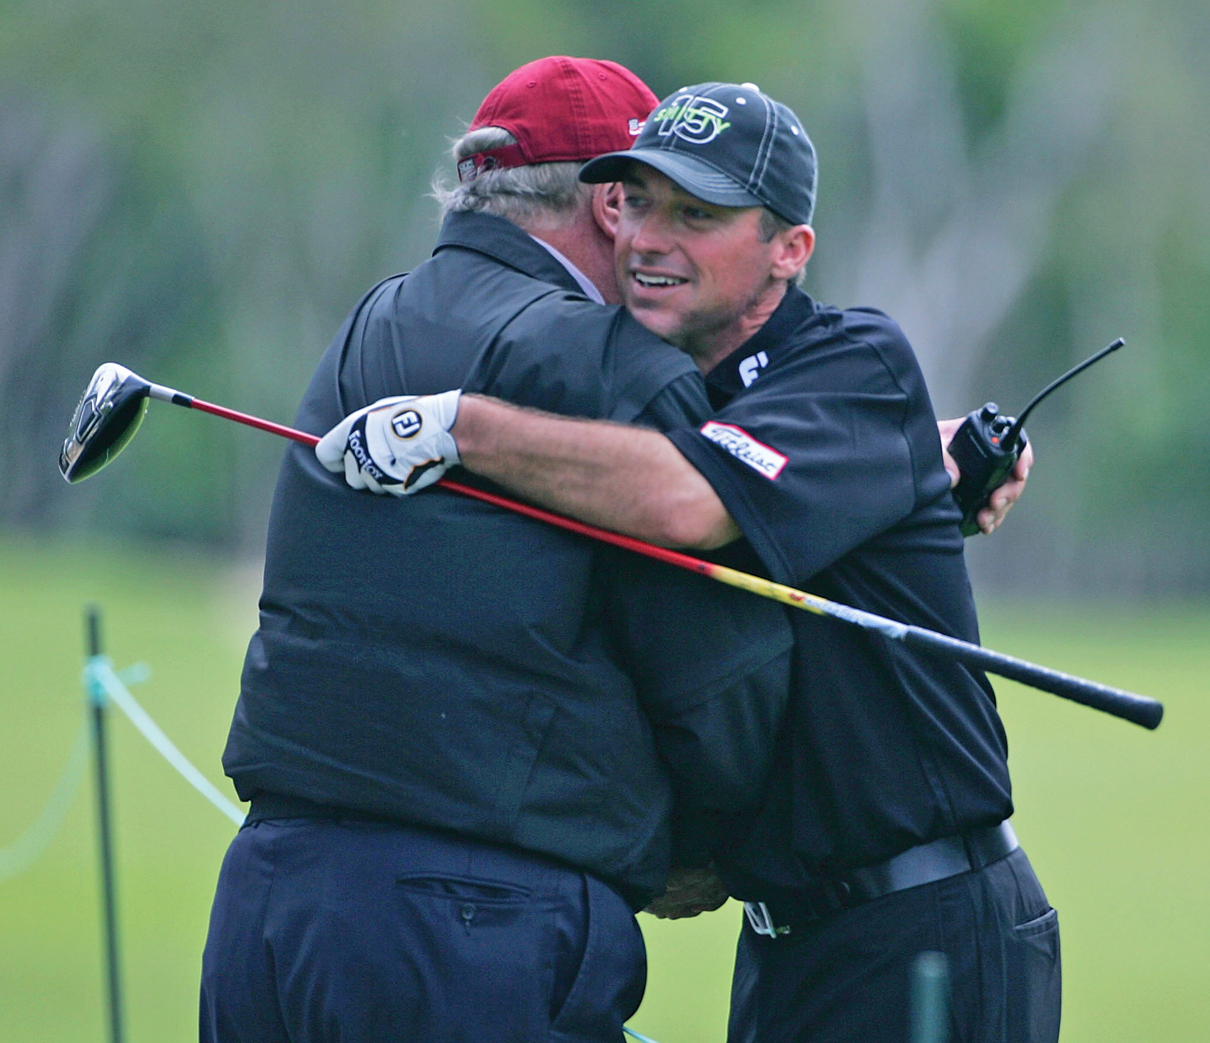 Chris Smith gets a greeting from PGA Tour rules official Michael Combs.